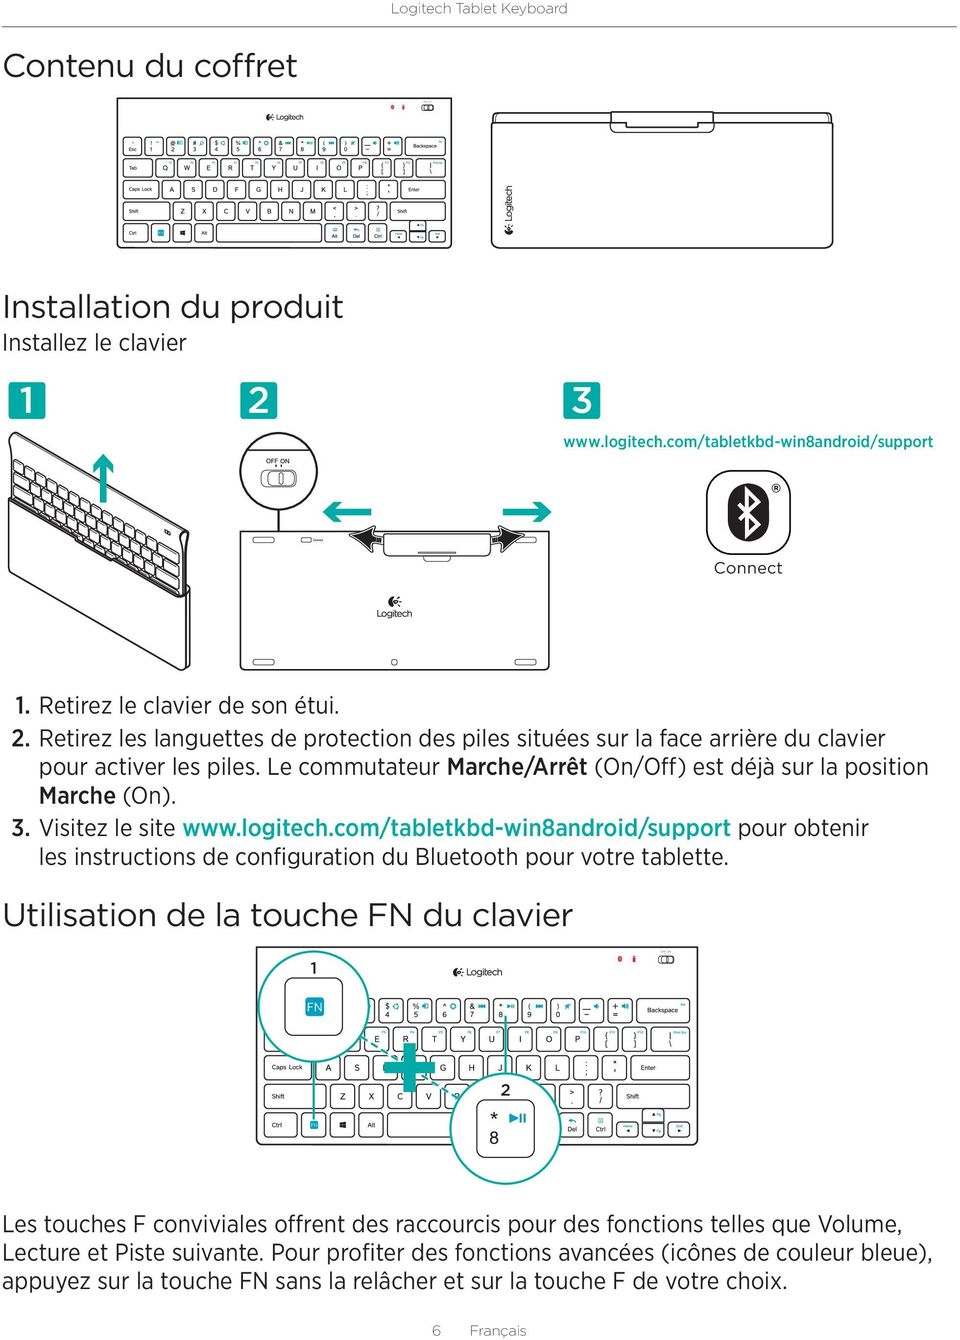 com/tabletkbd-win8android/support pour obtenir les instructions de configuration du Bluetooth pour votre tablette.